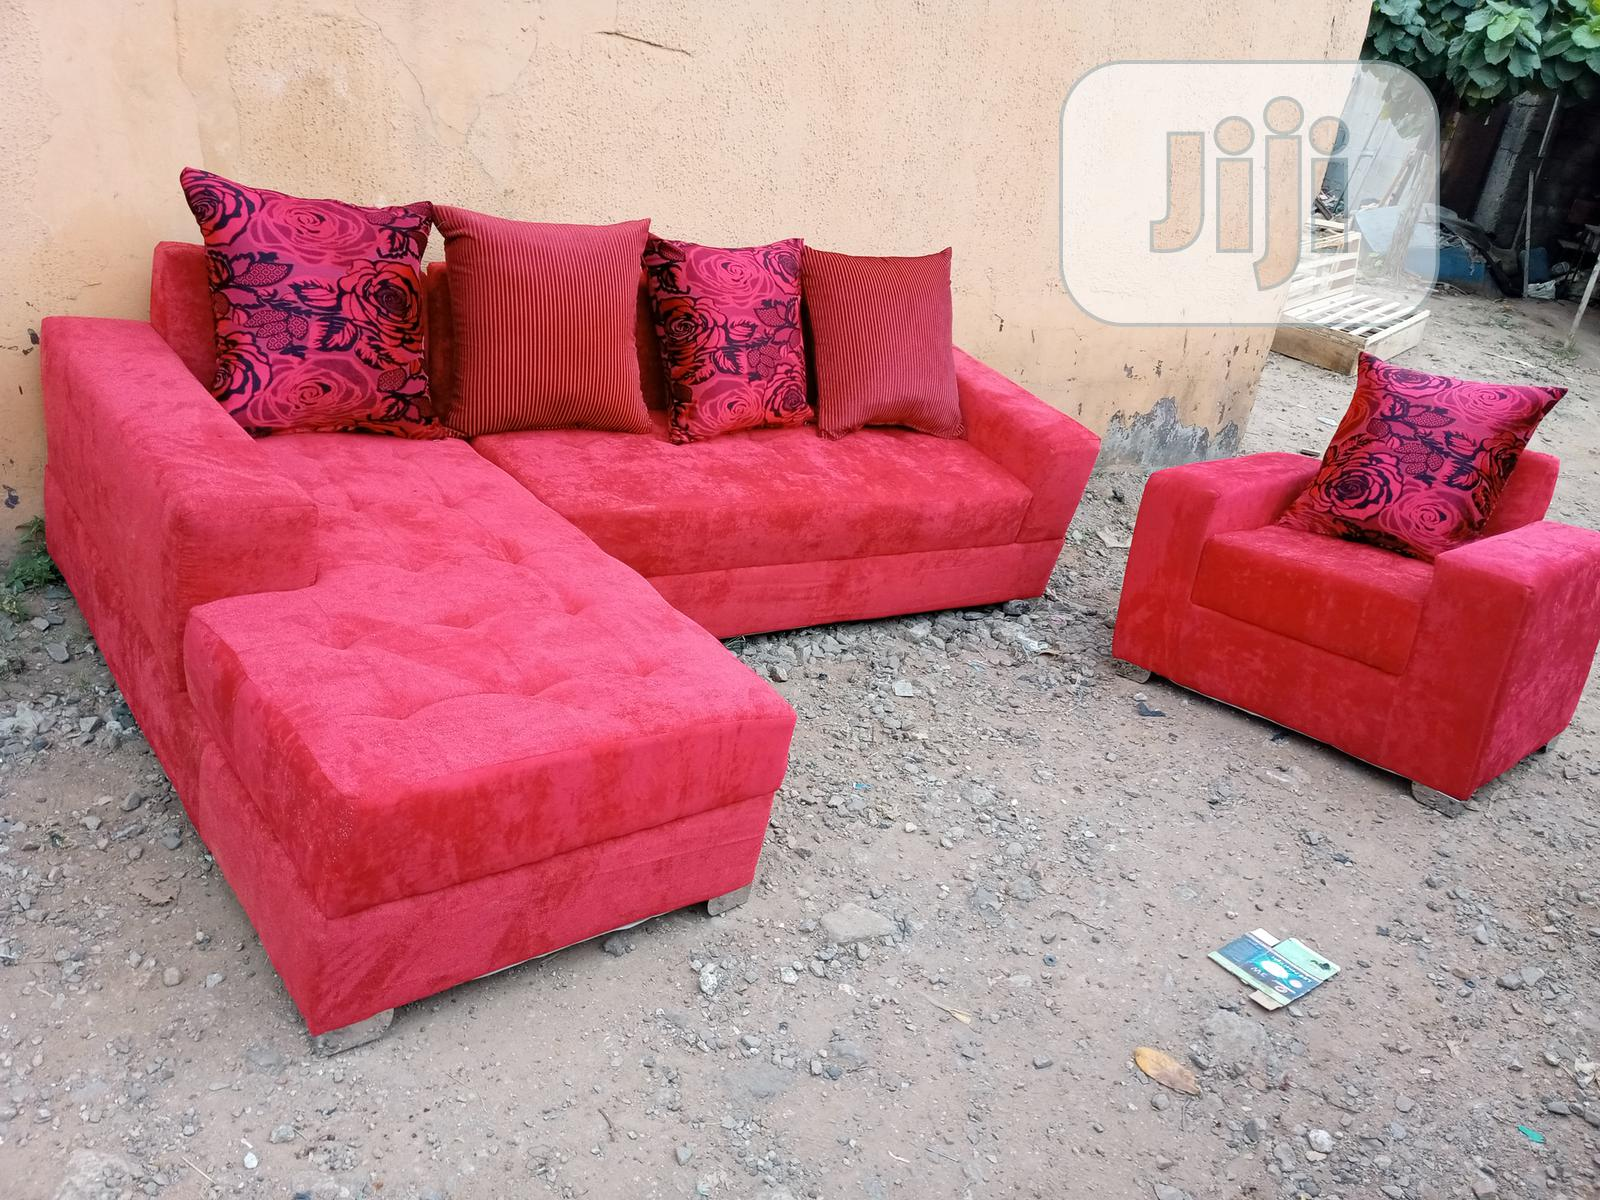 A Set of L-Shape Sofa With Single Seater Chair. Fabric Couch